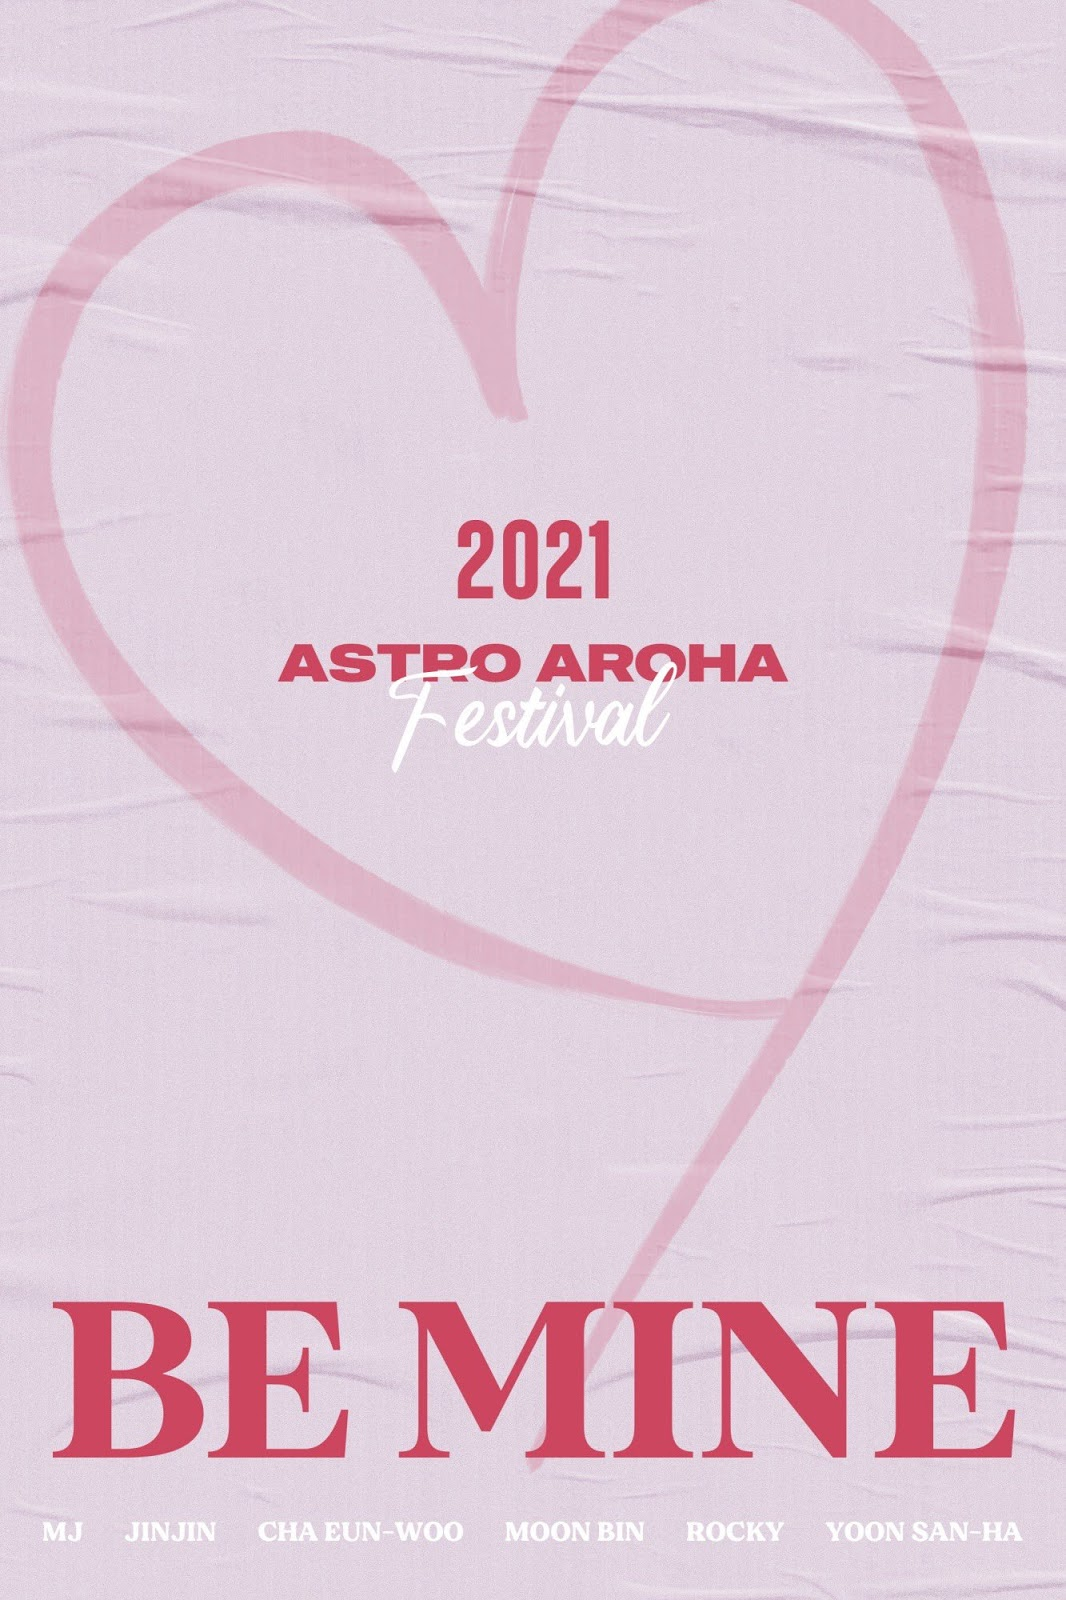 astro fanmeeting aaf be mine